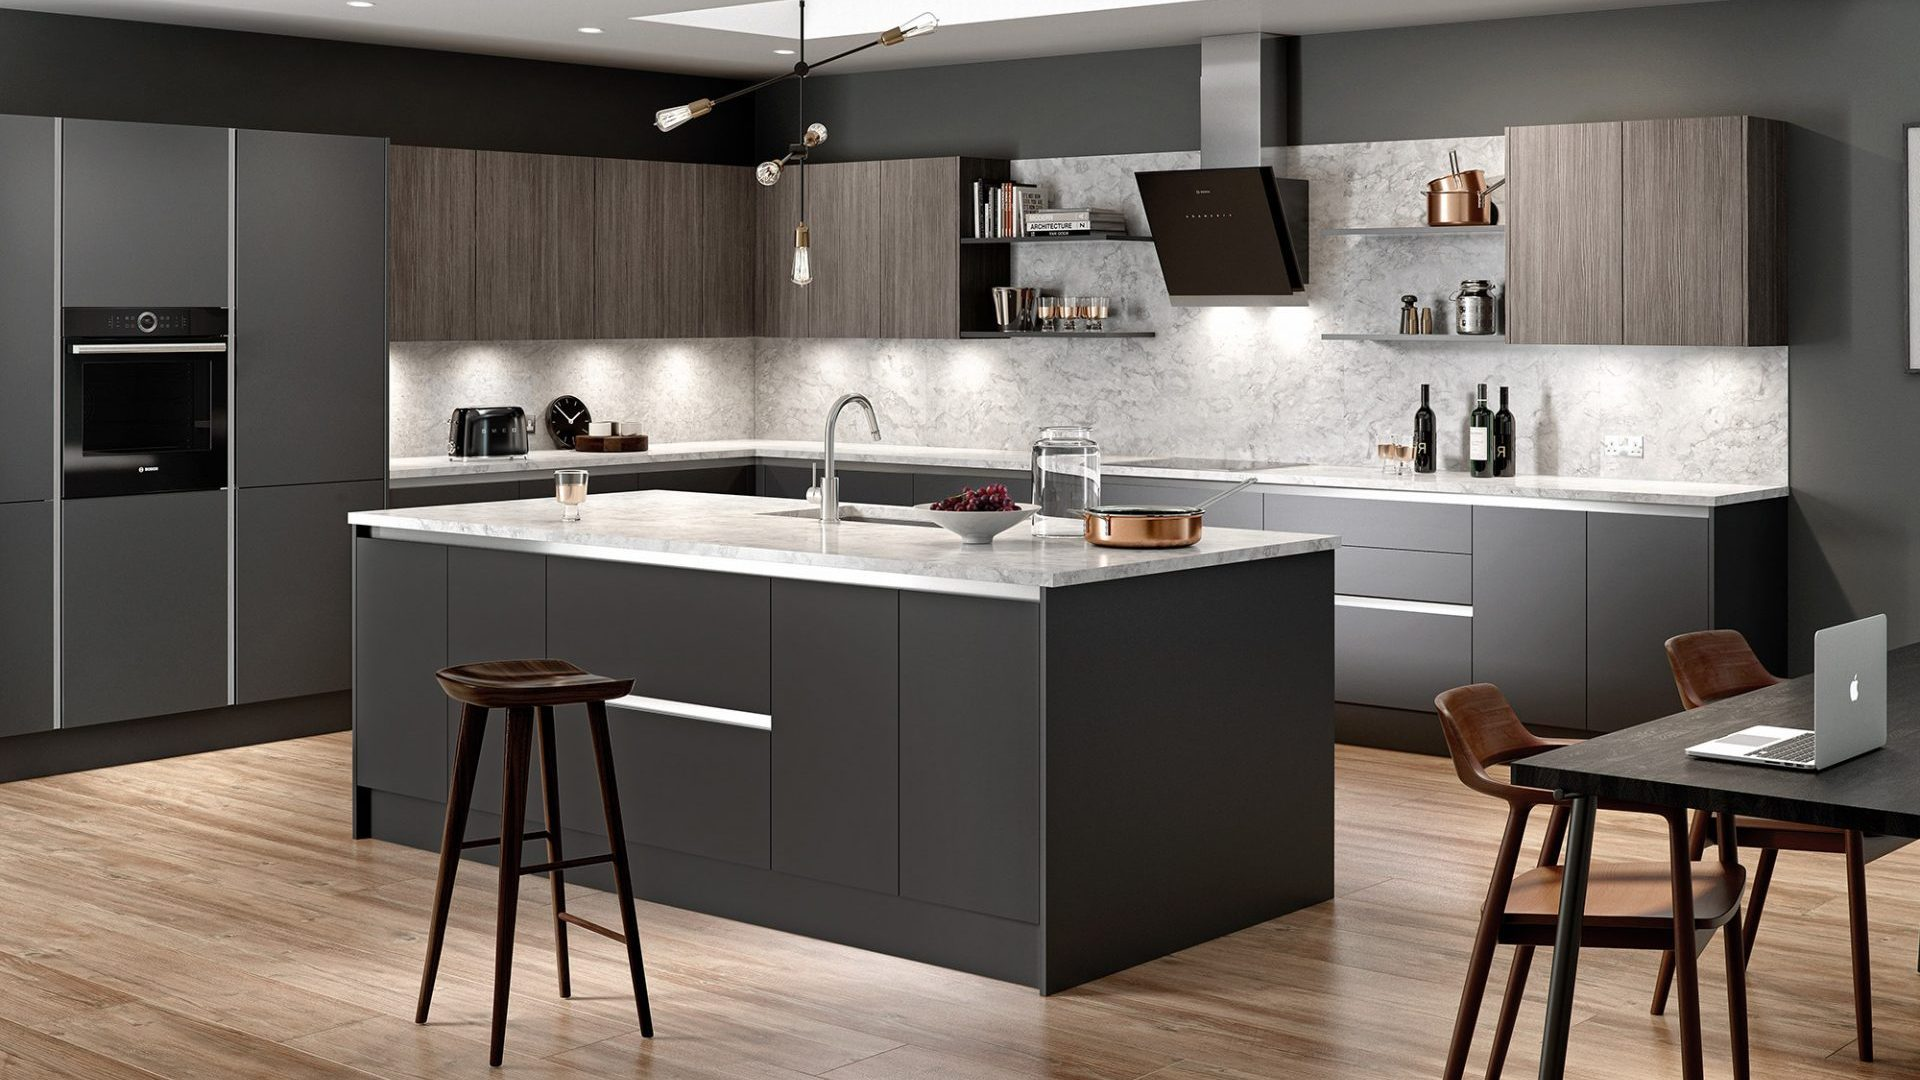 BESPOKE KITCHENS, BEDROOMS & FITTED FURNITURE